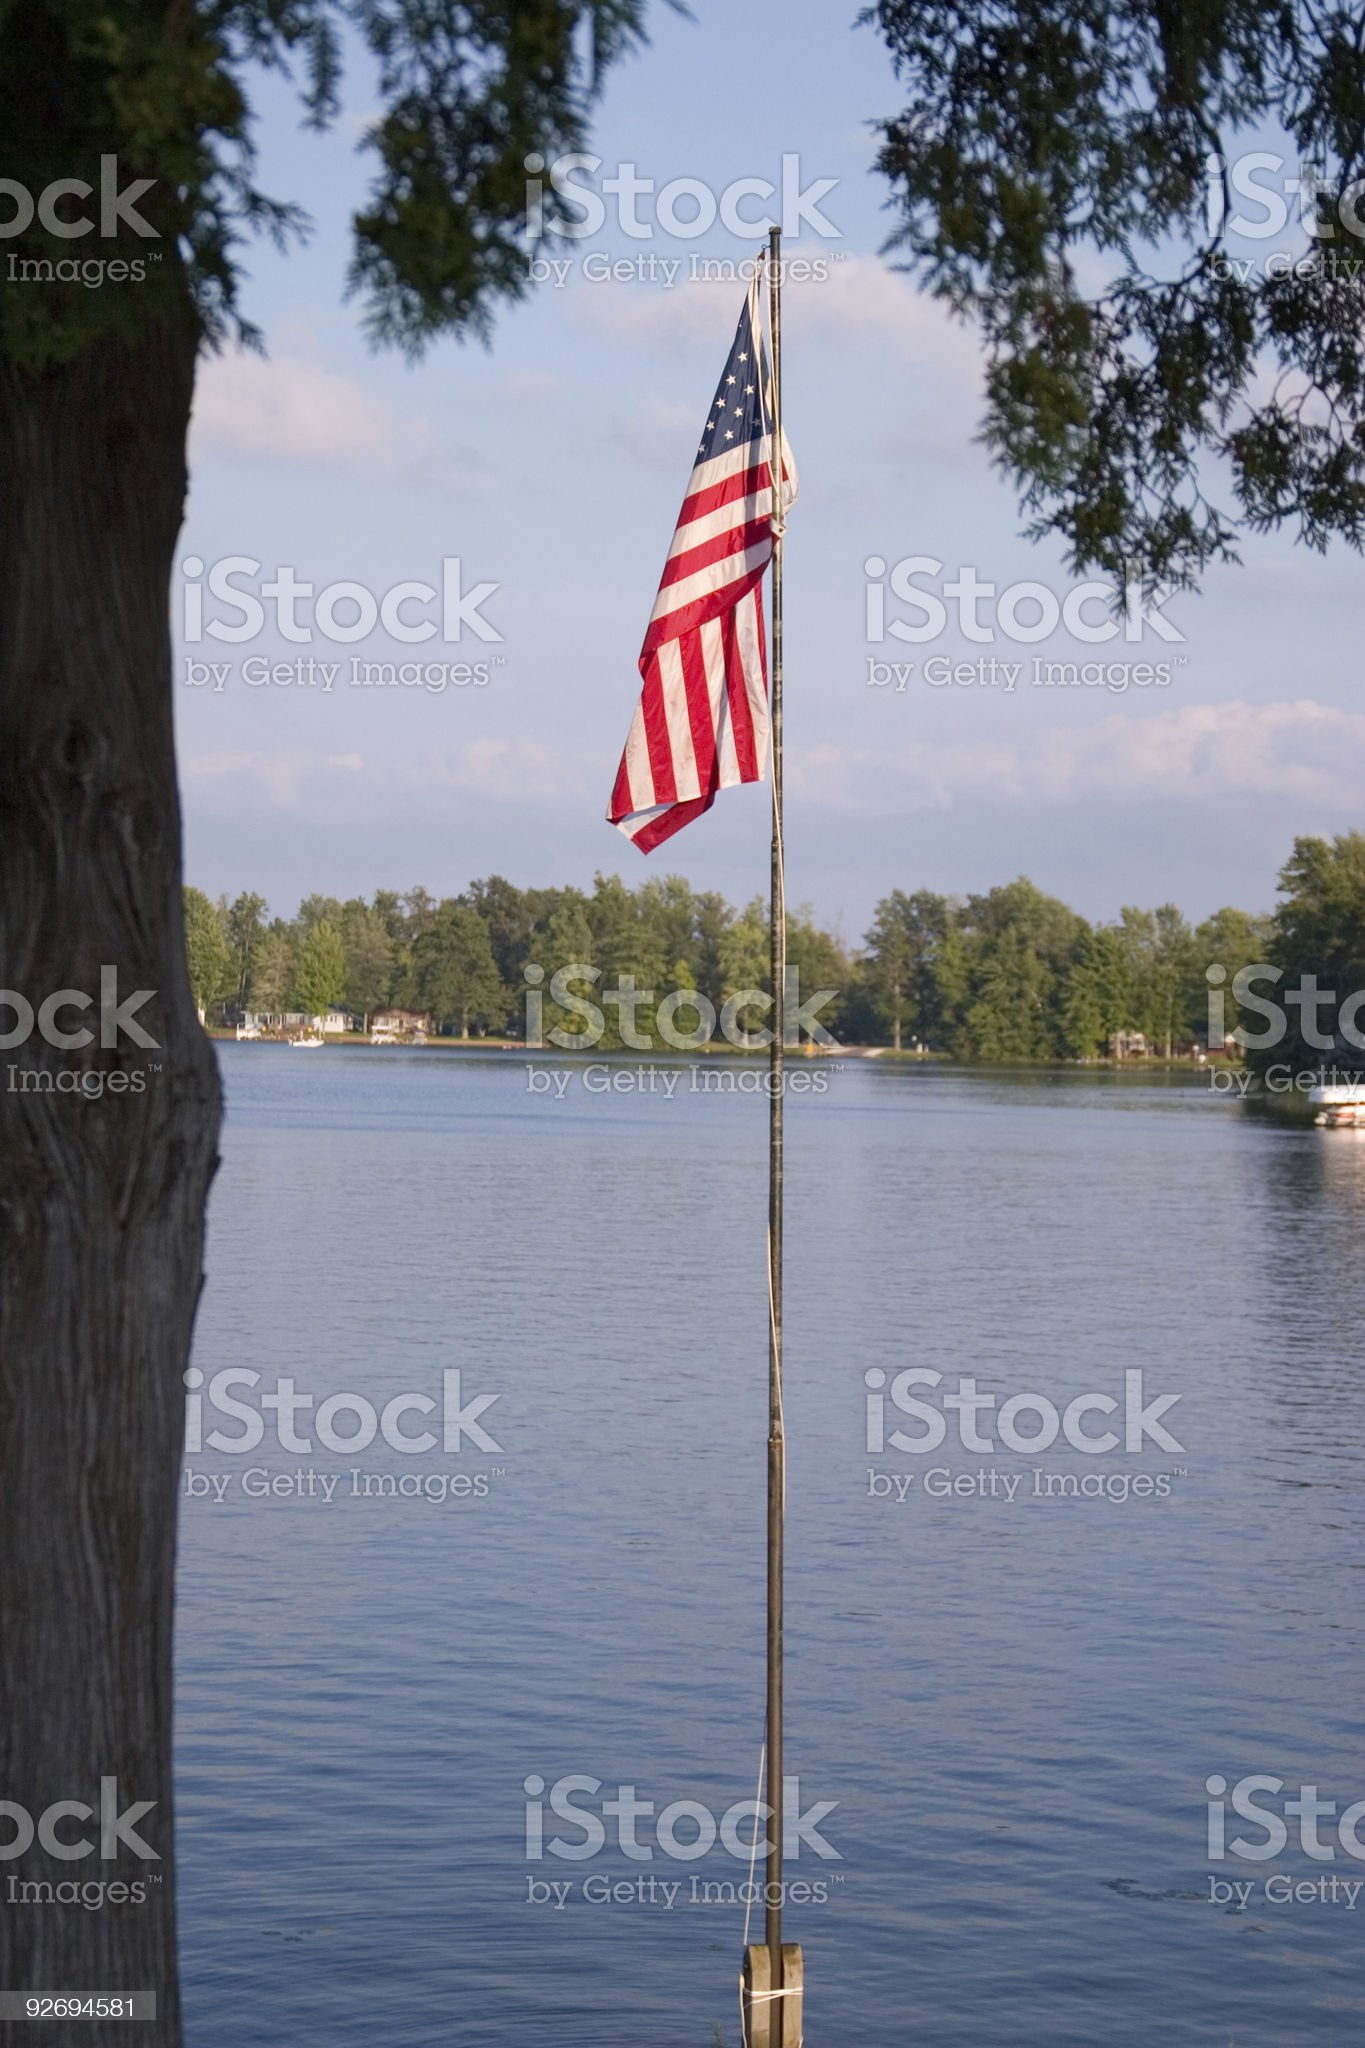 Flag by the Lake royalty-free stock photo